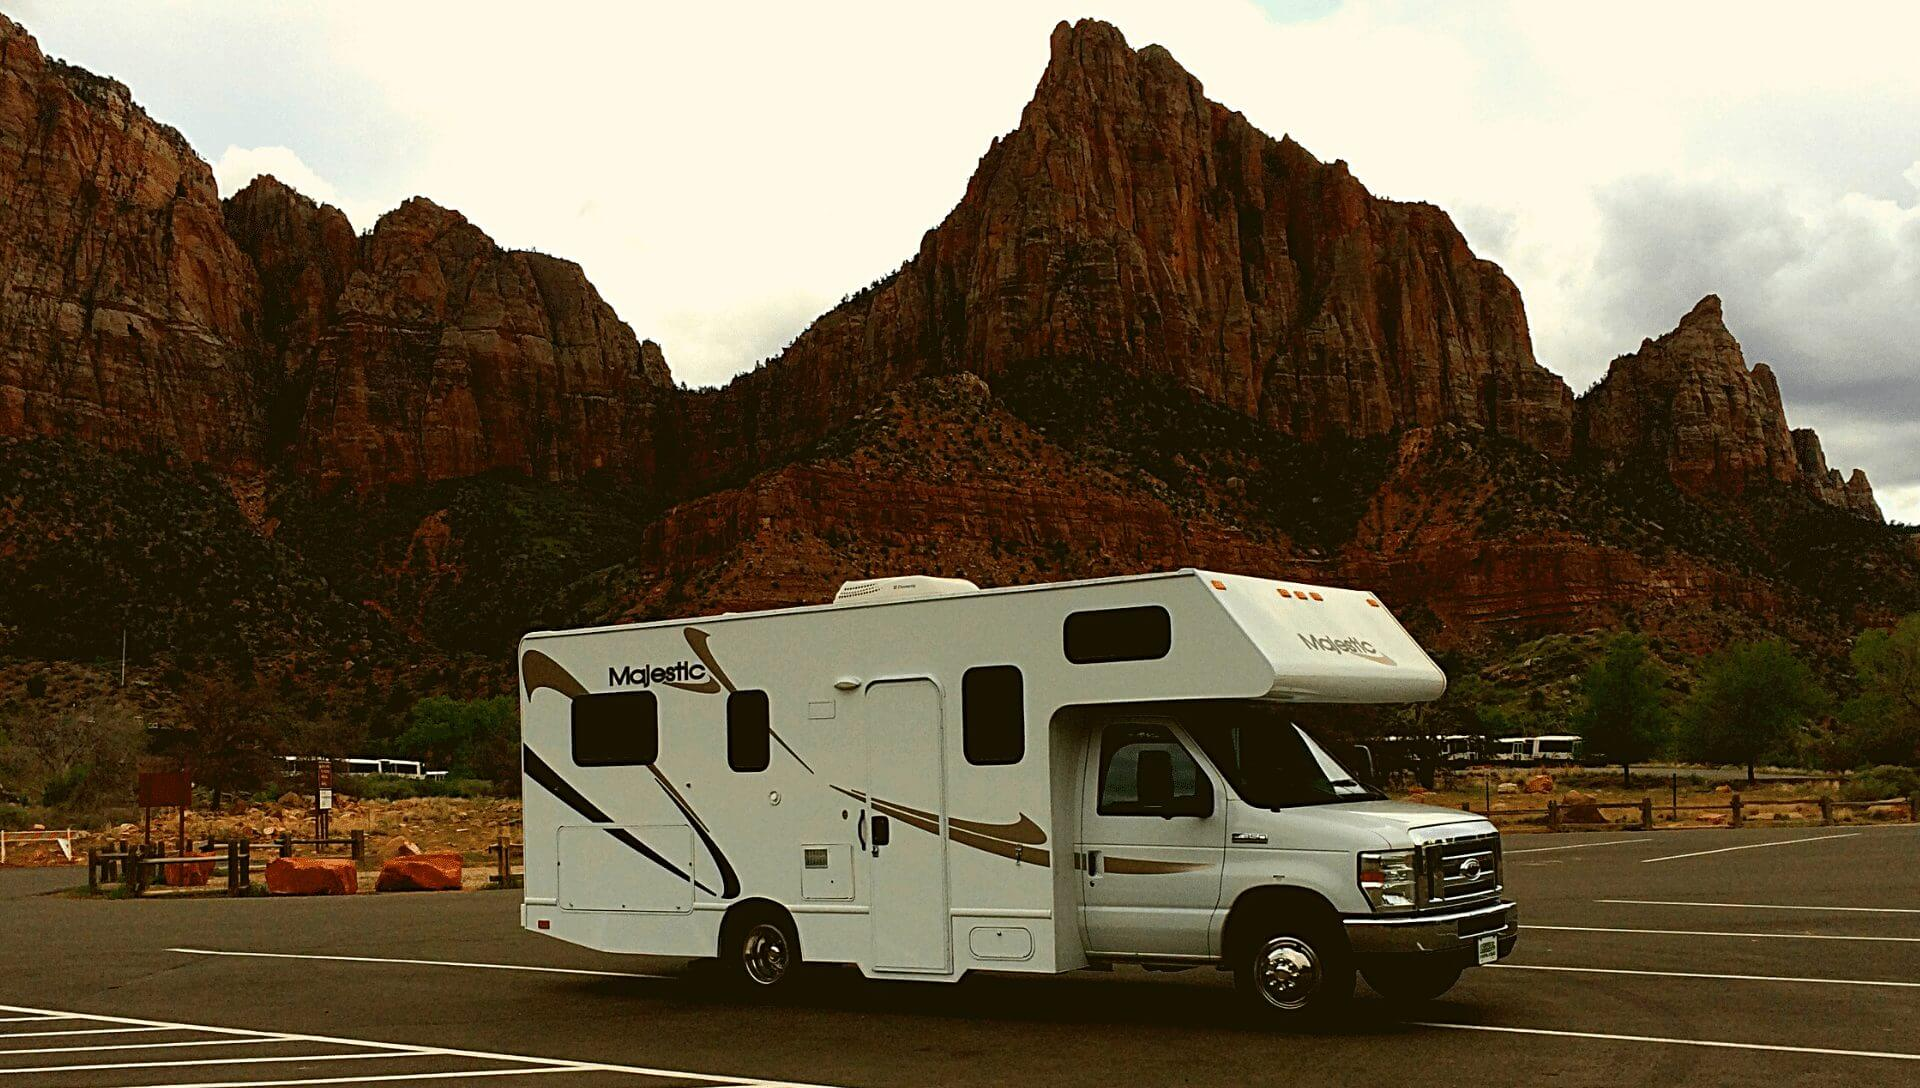 A Class C diesel motorhome is parked at Zion National Park with the mountains behind it.